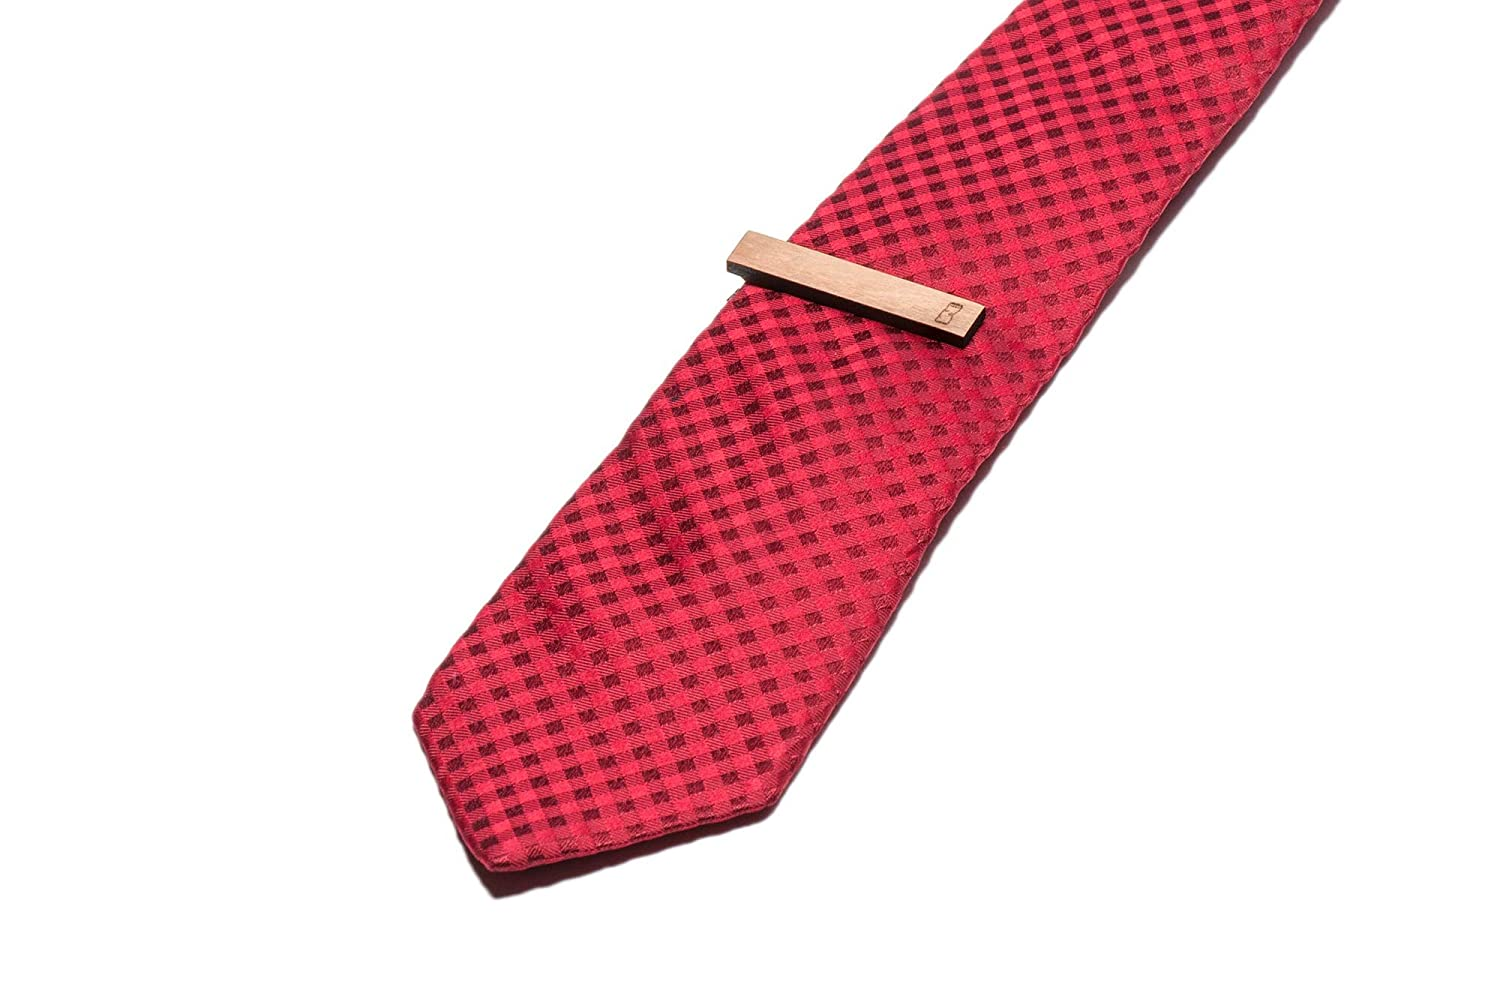 Cherry Wood Tie Bar Engraved in The USA Wooden Accessories Company Wooden Tie Clips with Laser Engraved Folded Soda Can Design